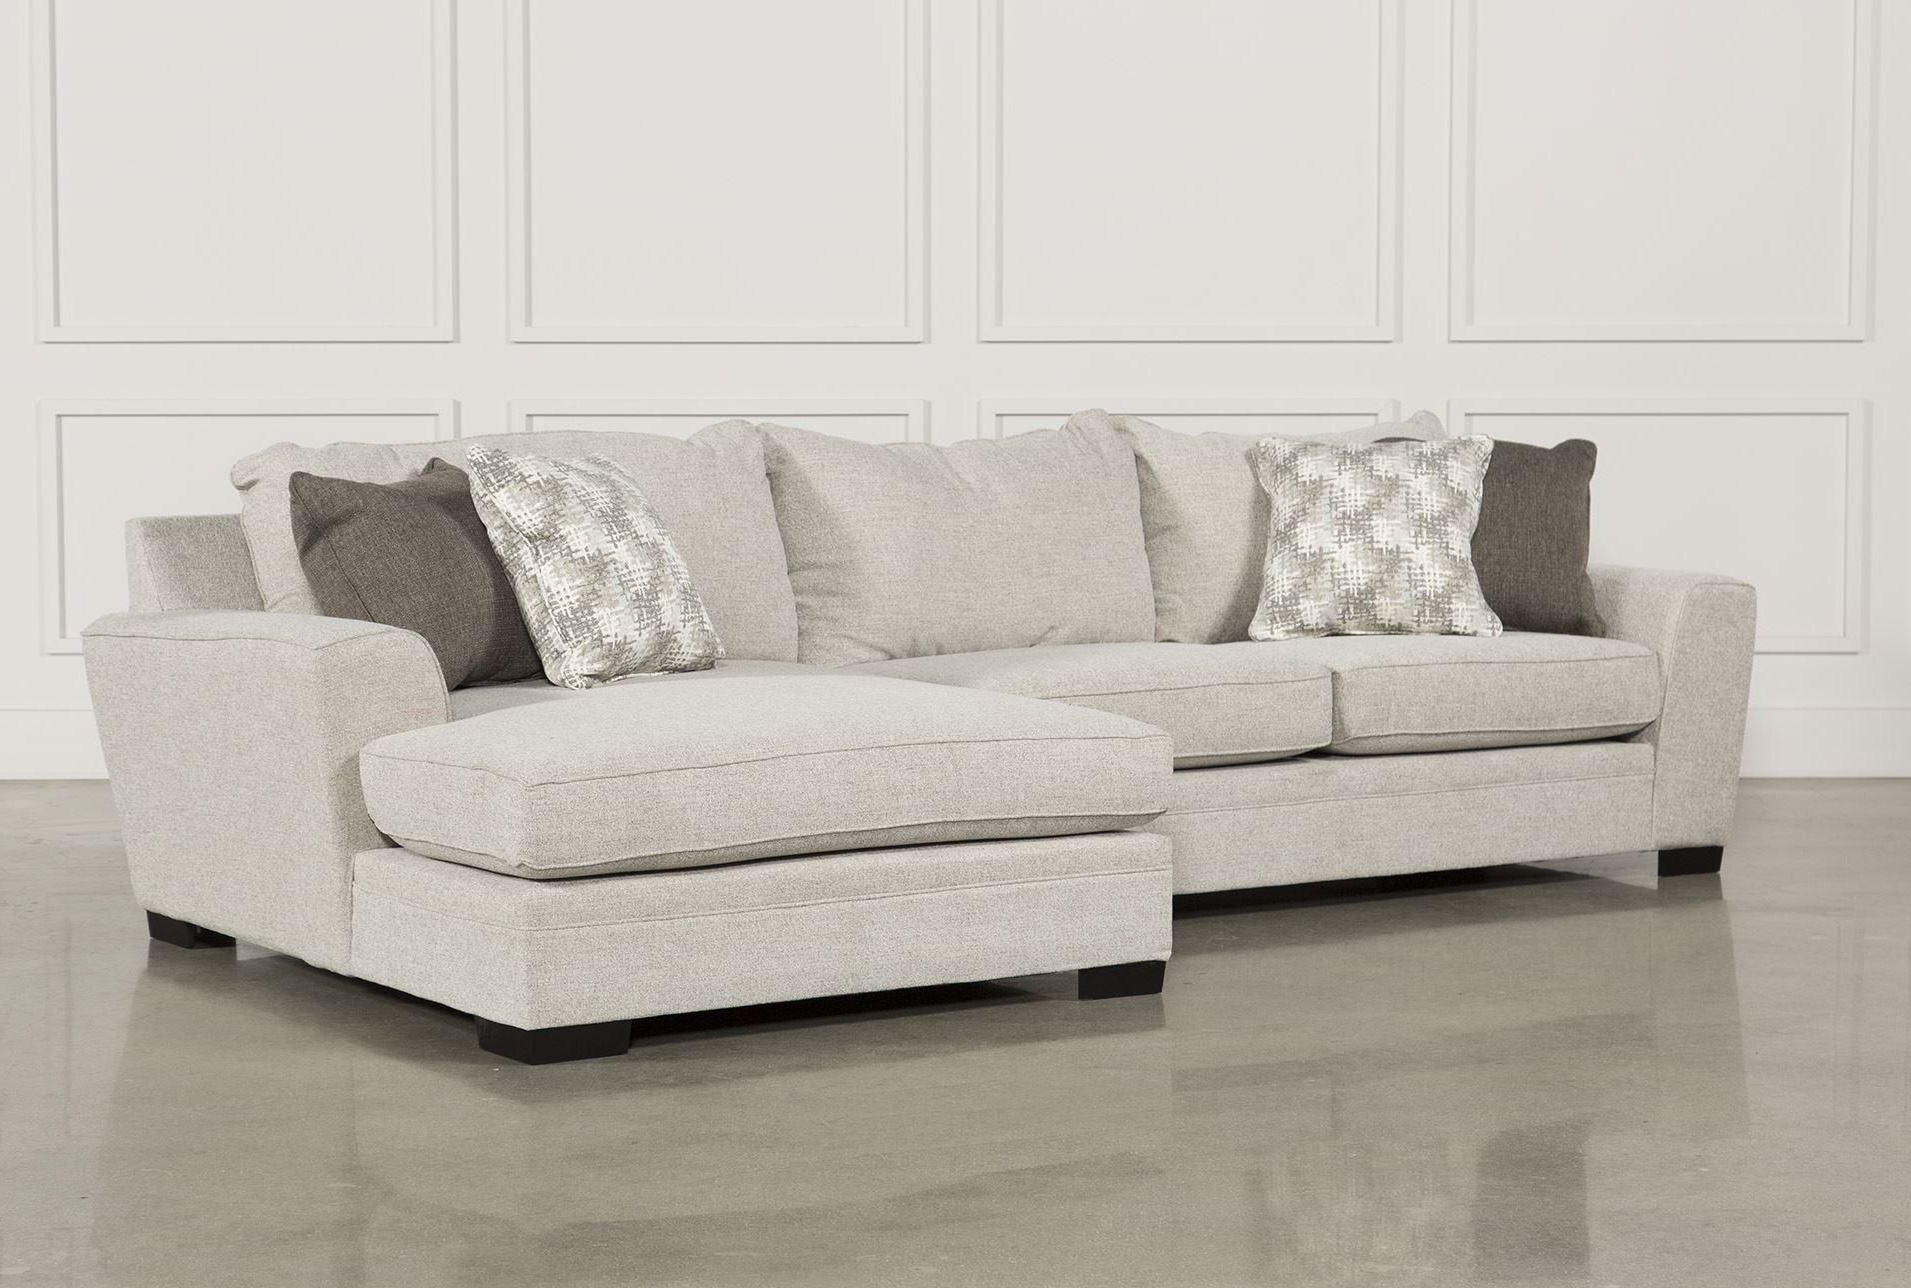 Aquarius Light Grey 2 Piece Sectionals With Raf Chaise Inside Most Up To Date Delano 2 Piece Sectional W/raf Oversized Chaise (View 4 of 20)